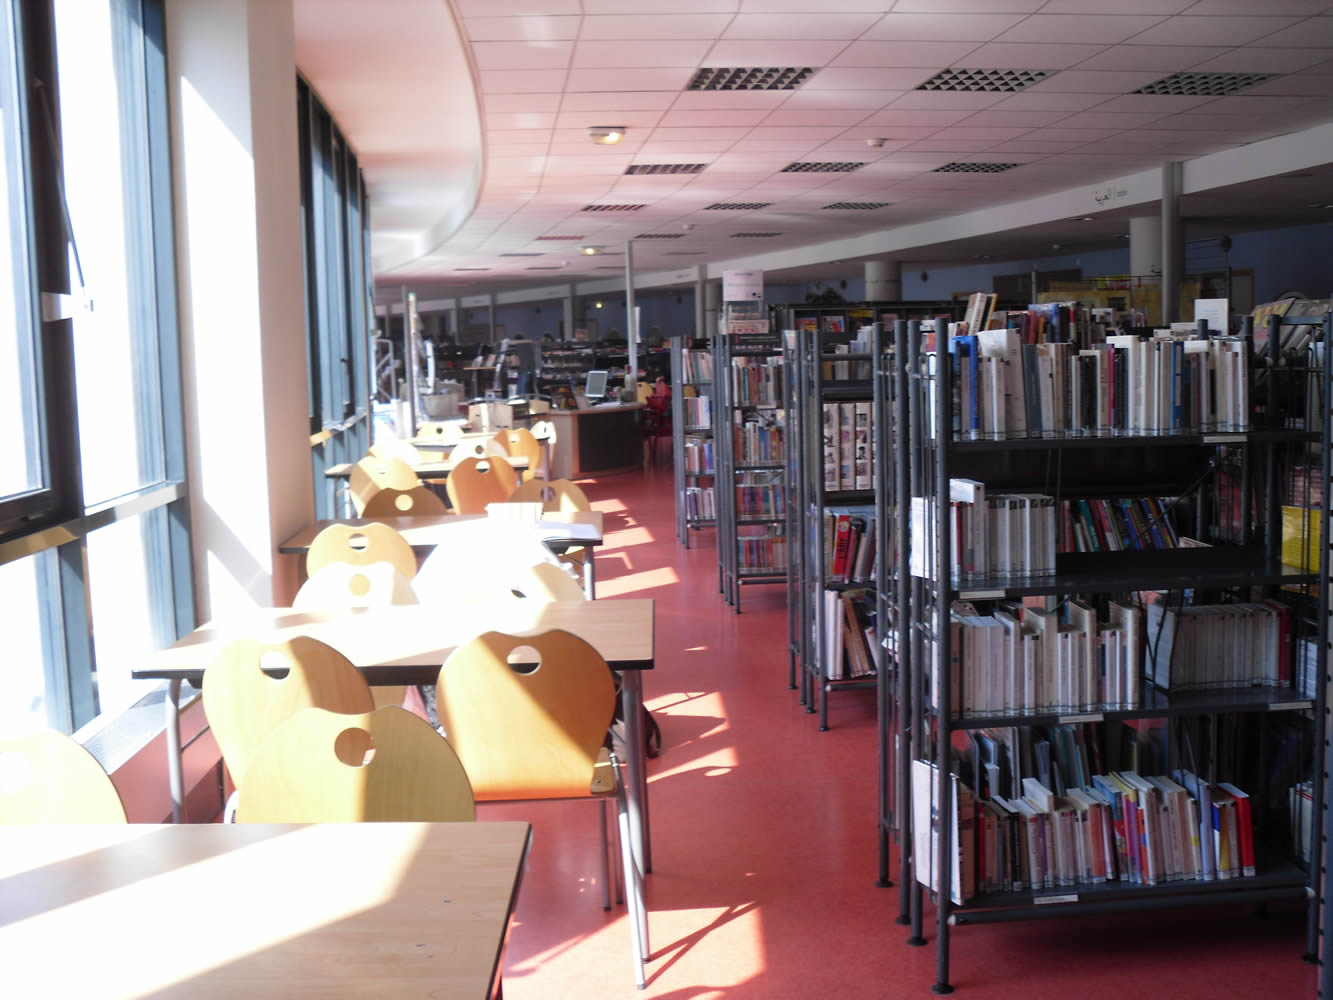 The School Environment — The American School of Grenoble